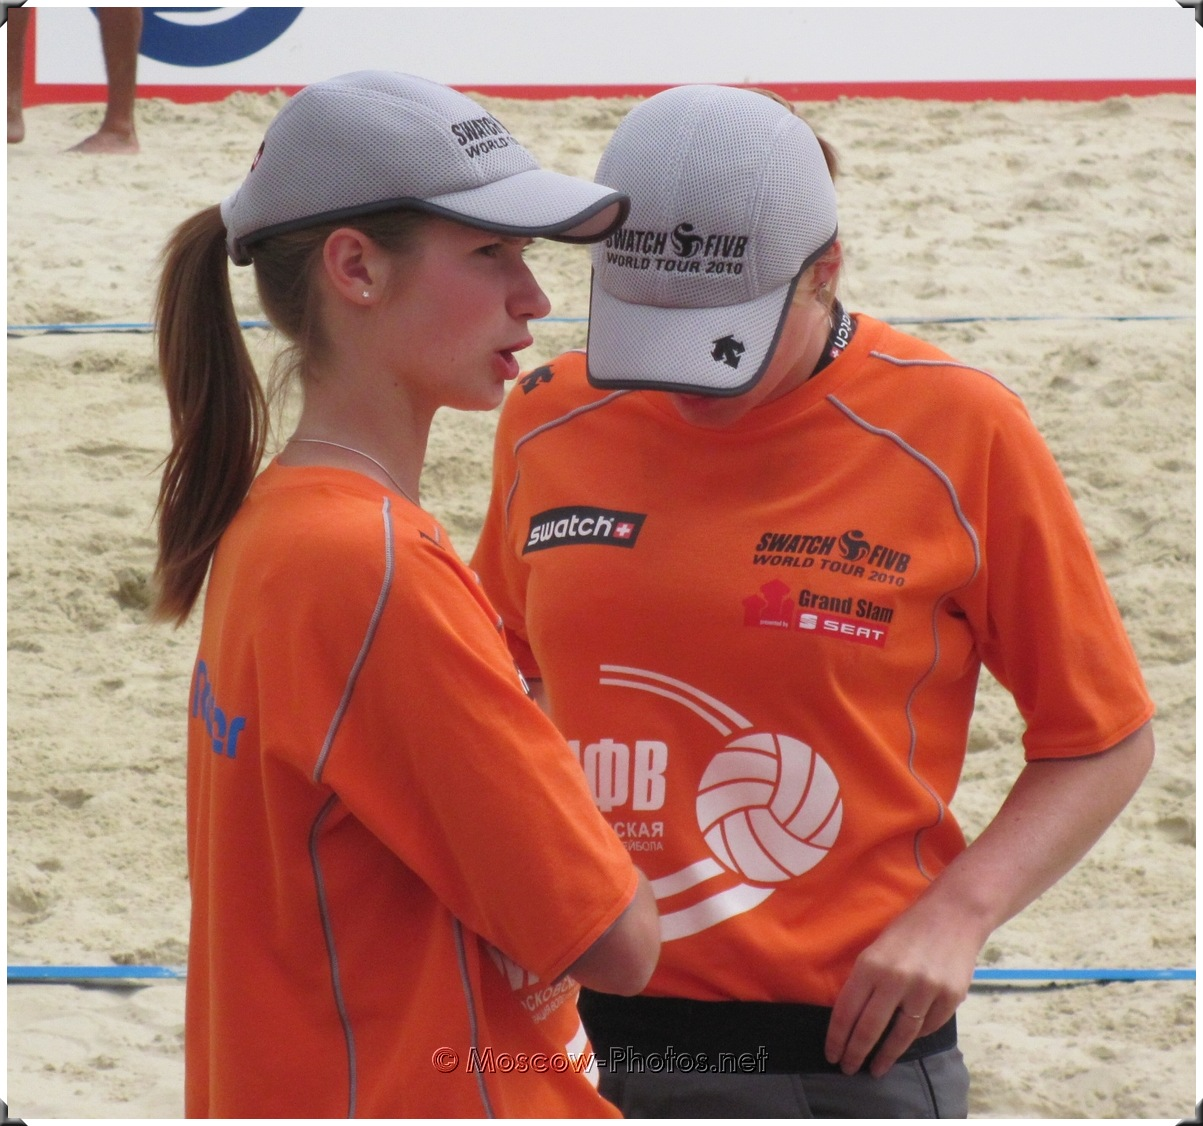 At half-time in beach volleyball